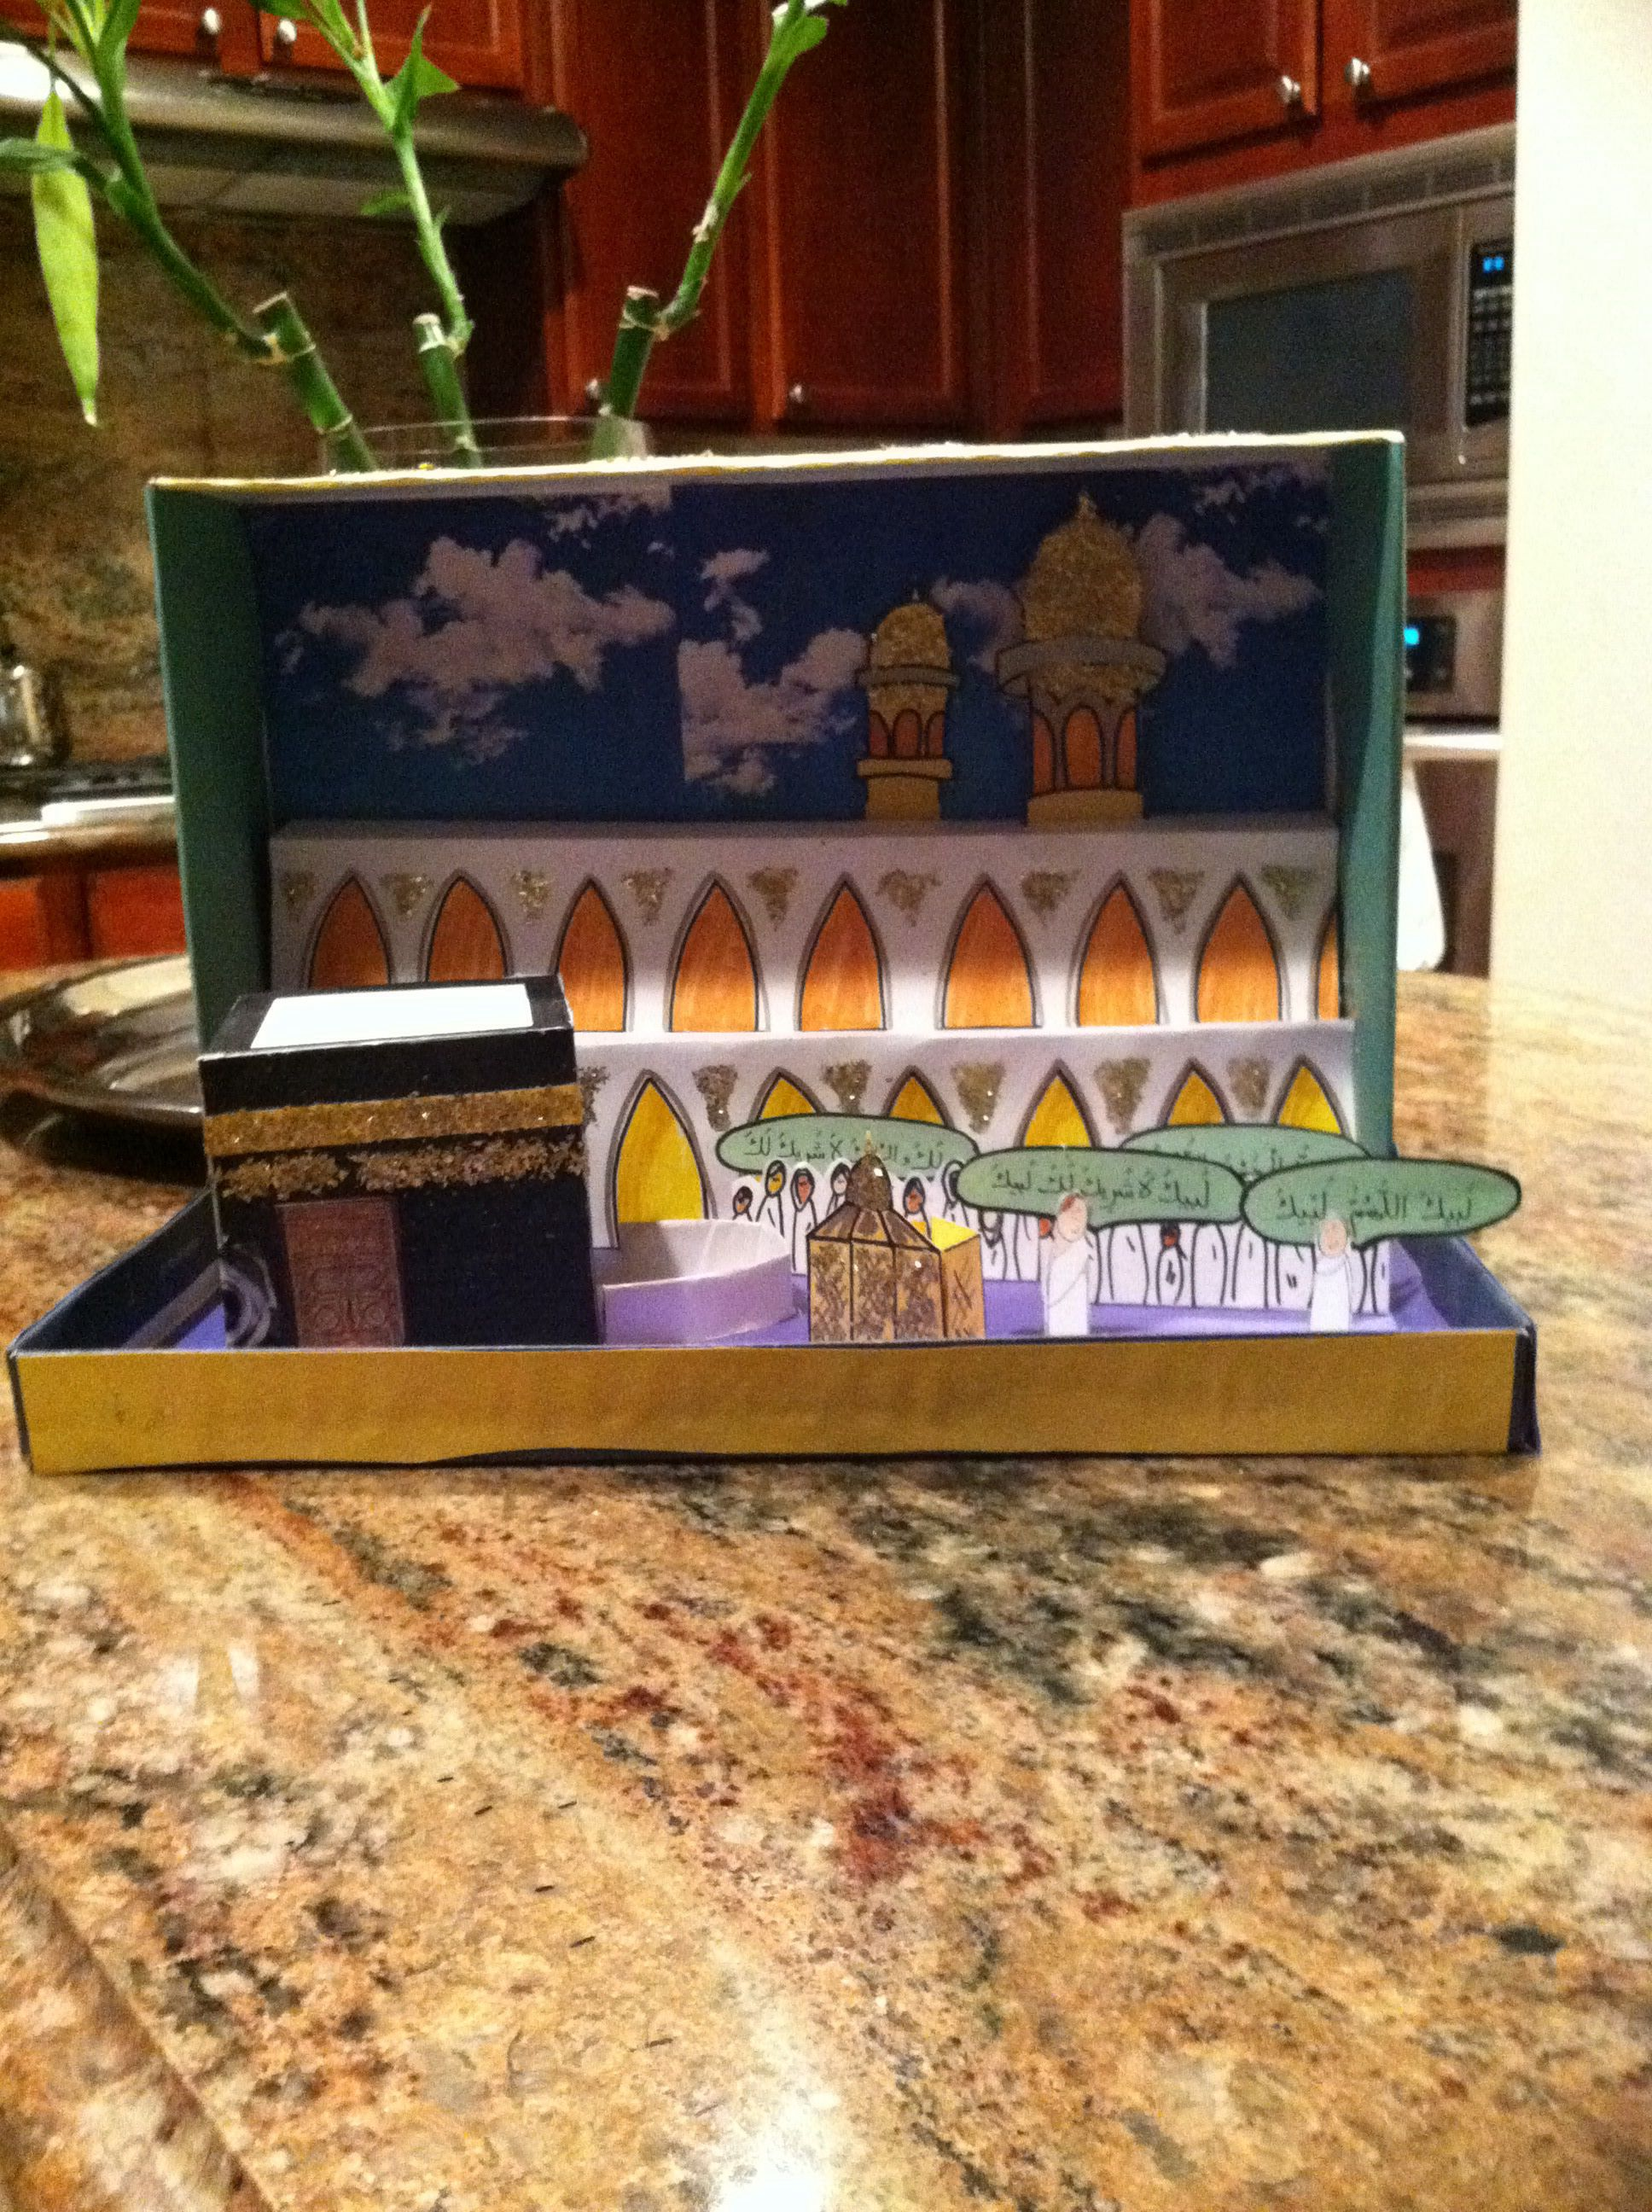 Make A Pizza Box Or Shoe Box Diorama For Eid Aladha Or